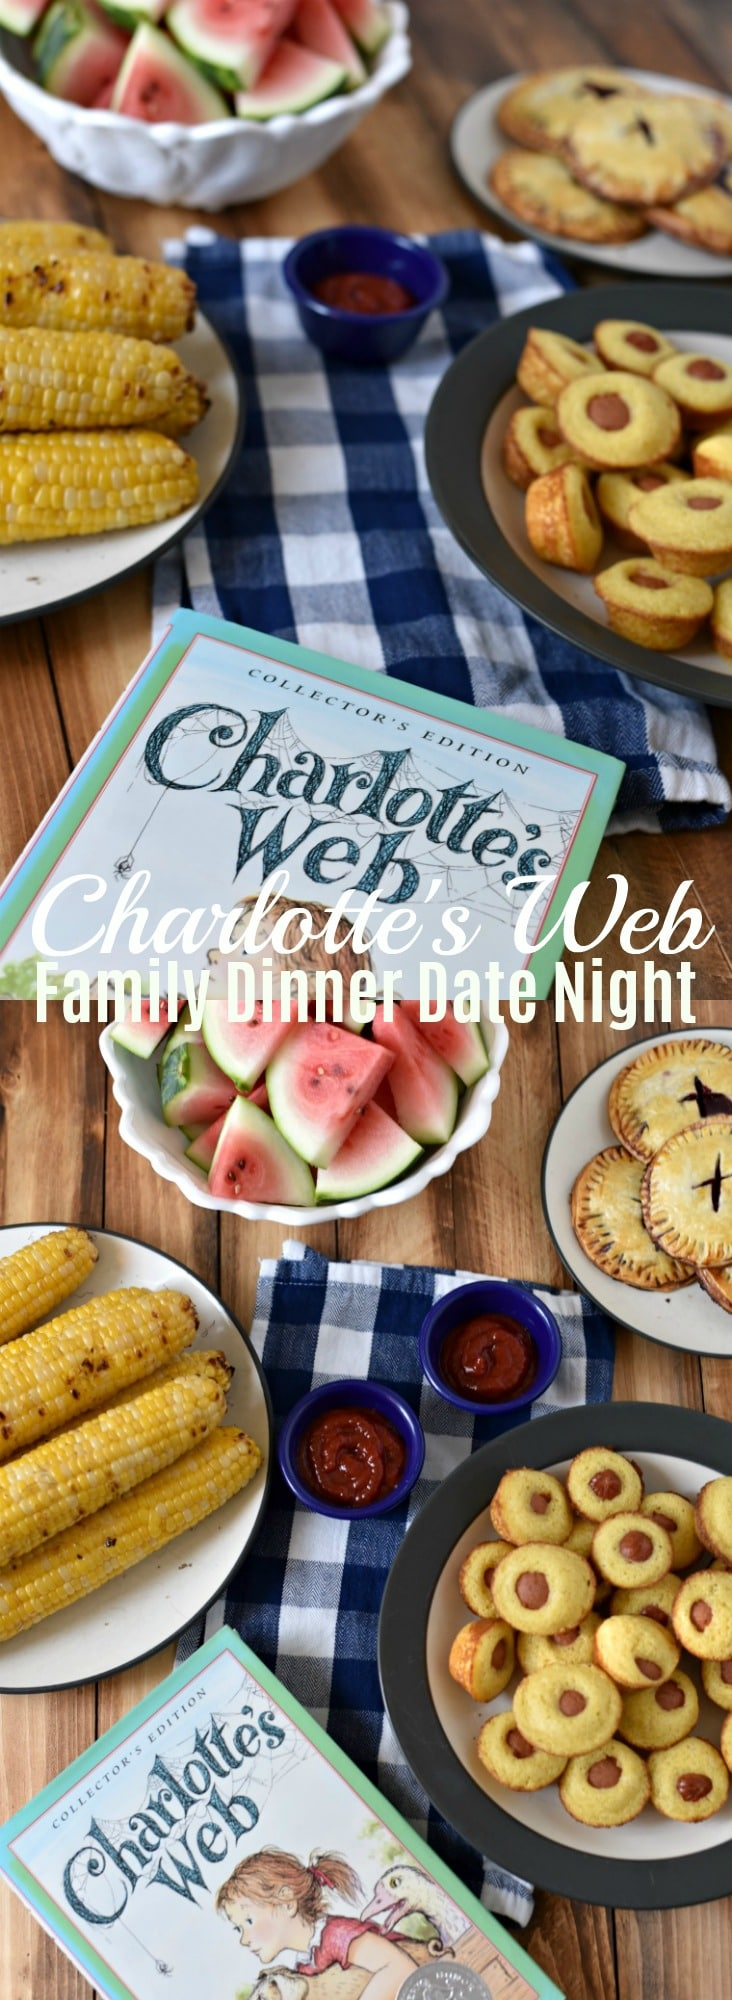 Aimed at quality time with your family - reading books, cooking & baking together, & then watching a movie. Charlotte's Web themed dinner & dessert.  Family Date Night, Family Dinner Date, Family Dinner, Charlotte's Web themed meal, Charlotte's Web Recipe, Mini Corn Dog Recipe, Cherry Hand Pie Recipe,